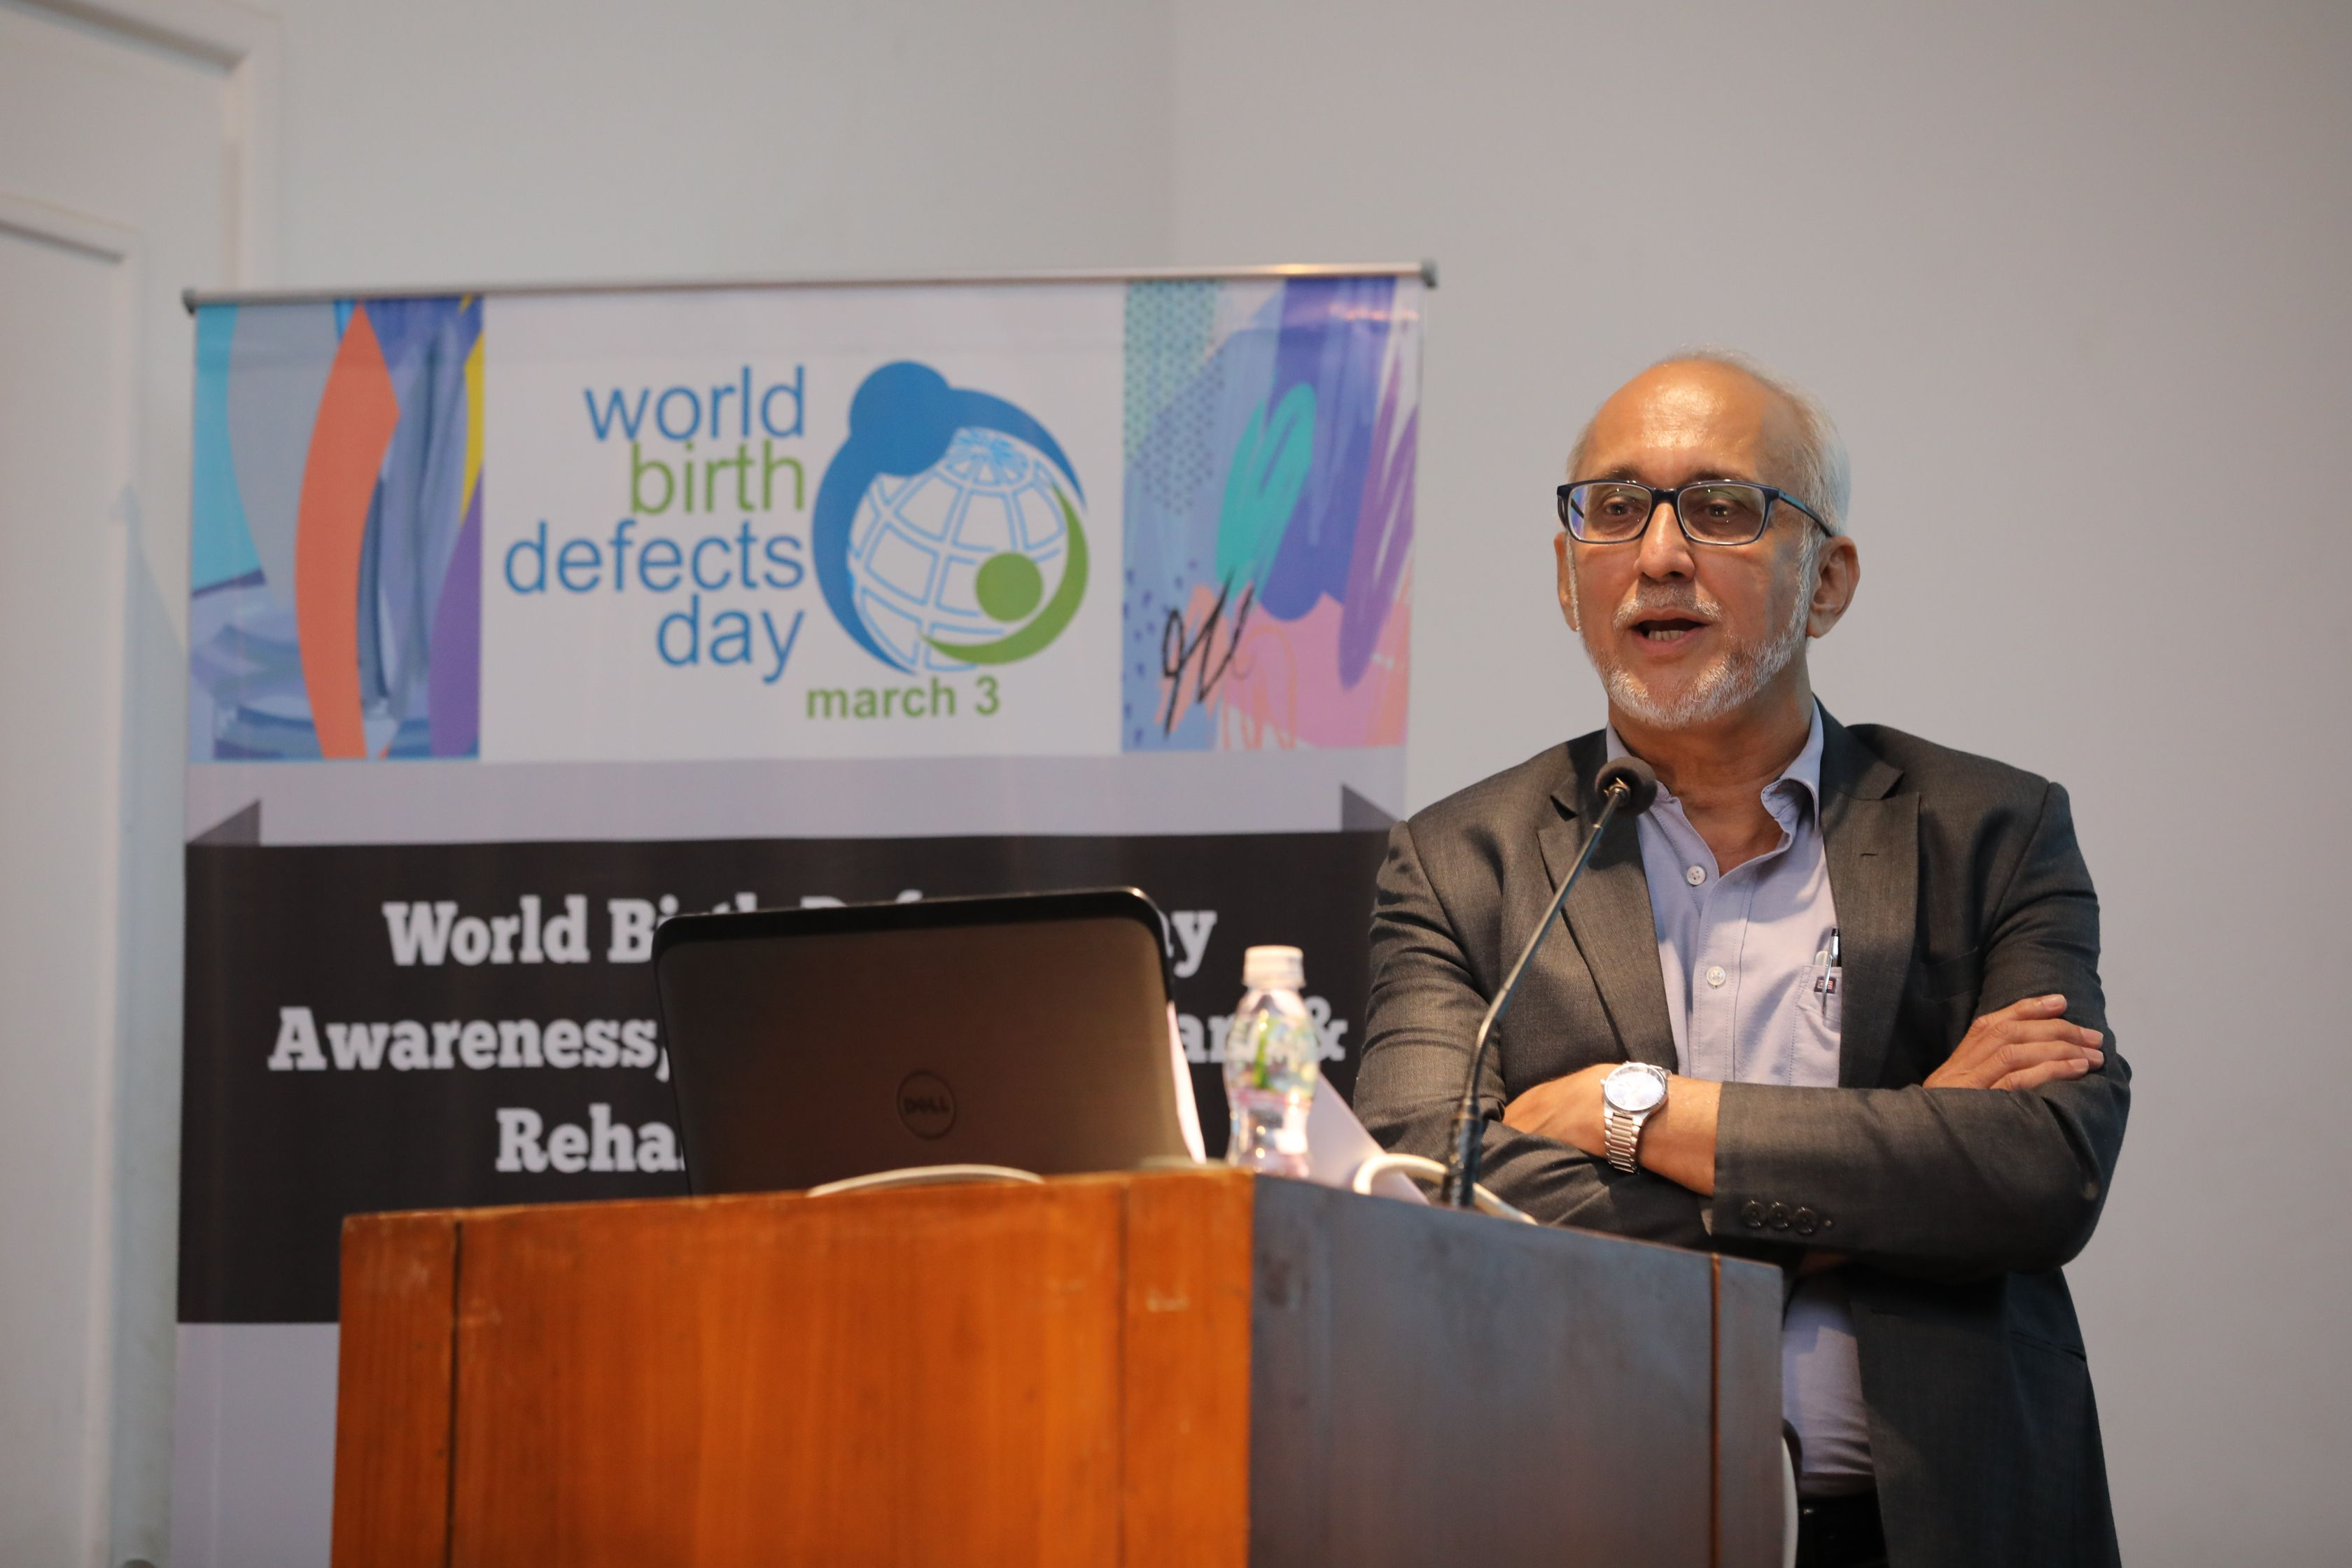 Meyer Organics and The Spina Bifida Foundation helm a critical discussion on World Birth Defect Day